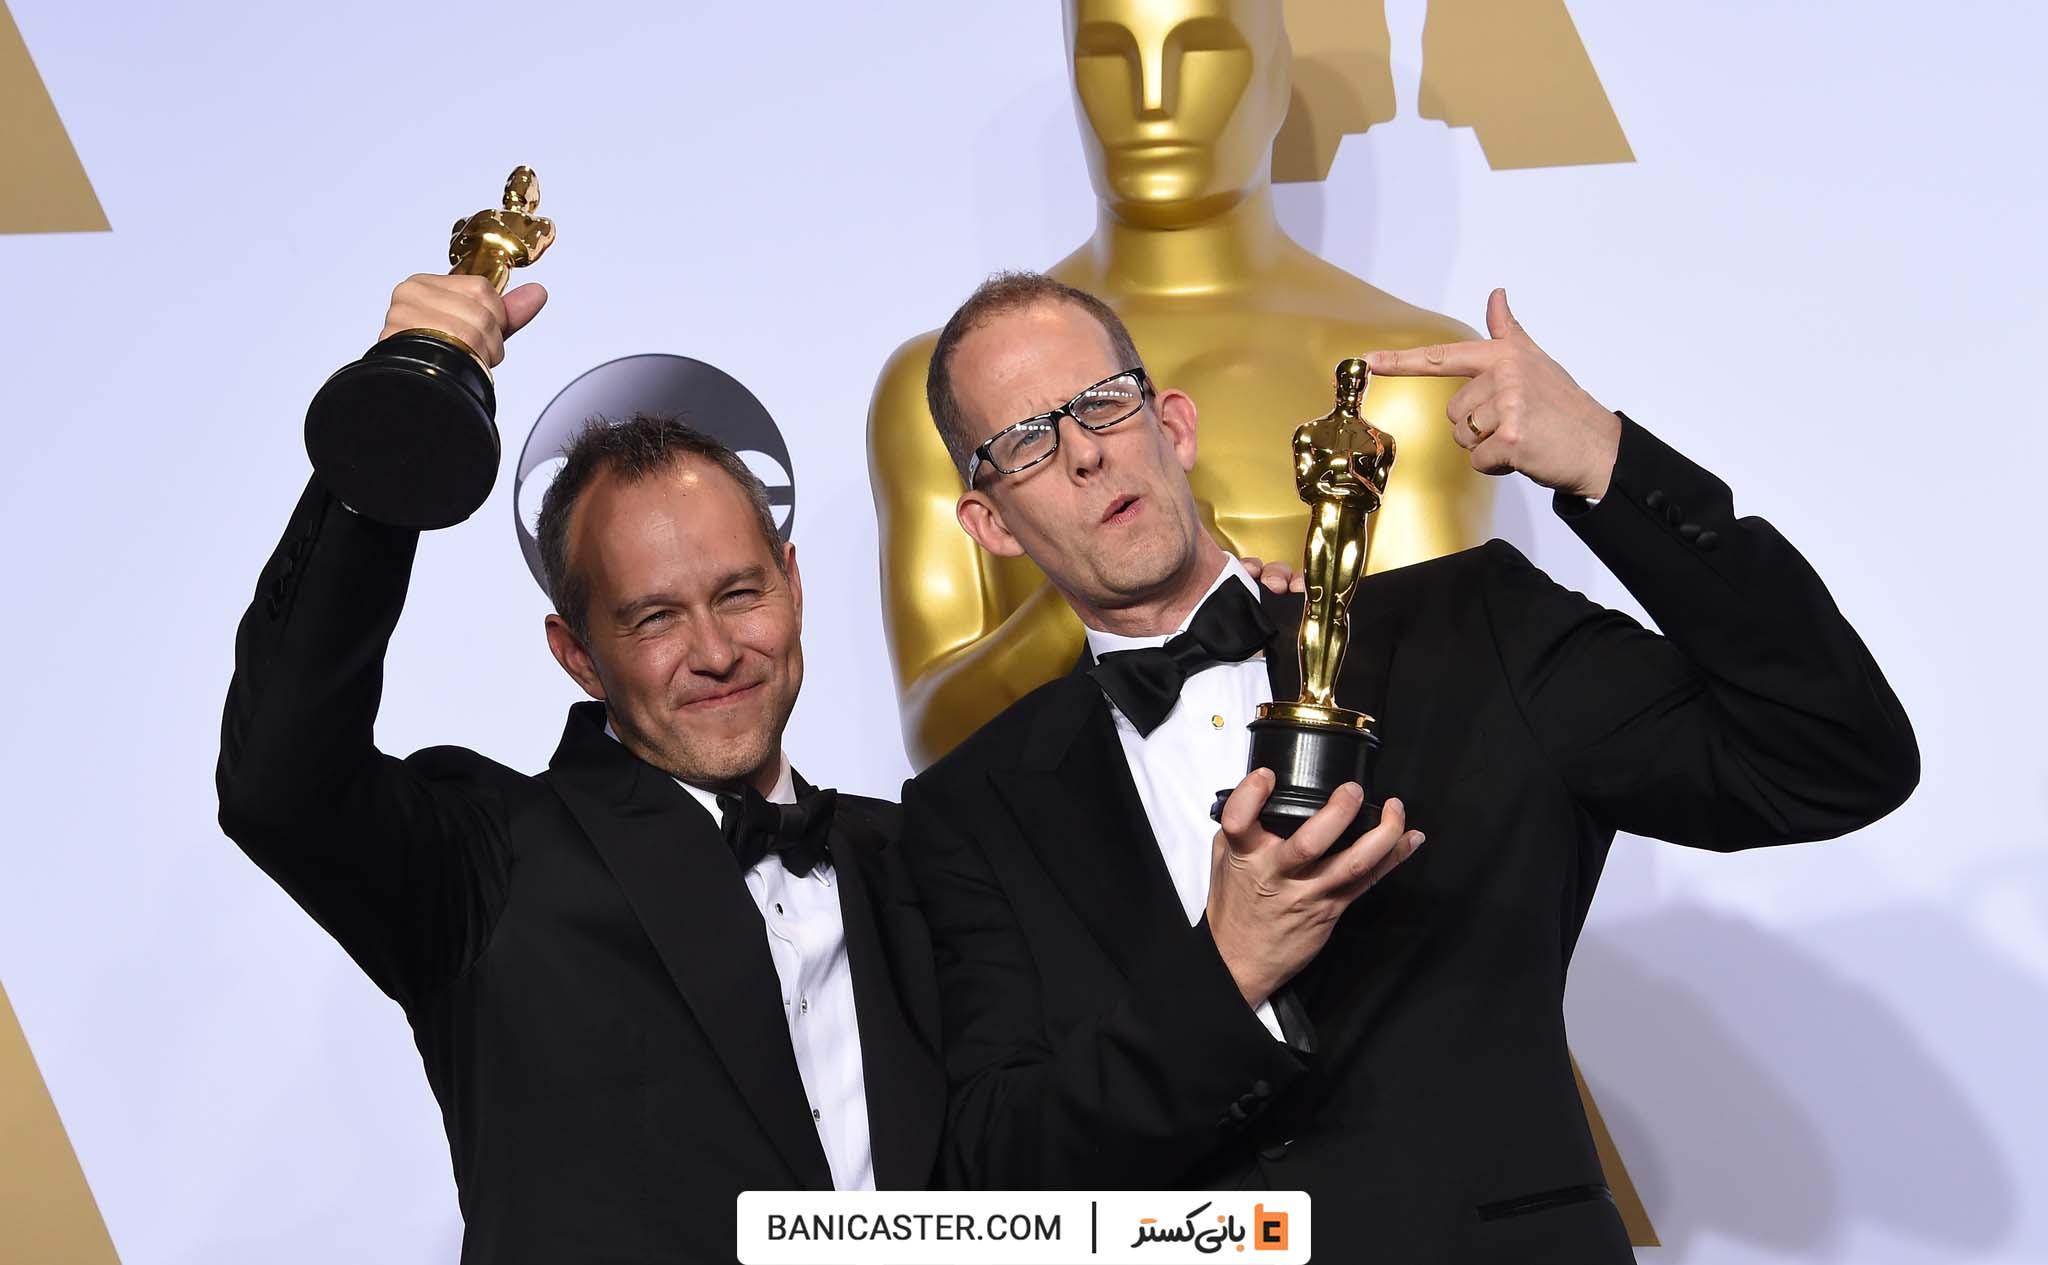 """Pete Docter (R) and Jonas Rivera pose with their Oscar for Best Animated Feature Film, """"Inside Out,"""" in the press room during the 88th Oscars in Hollywood on February 28, 2016. AFP PHOTO/FREDERIC J. BROWN / AFP / FREDERIC J. BROWN (Photo credit should read FREDERIC J. BROWN/AFP/Getty Images)"""